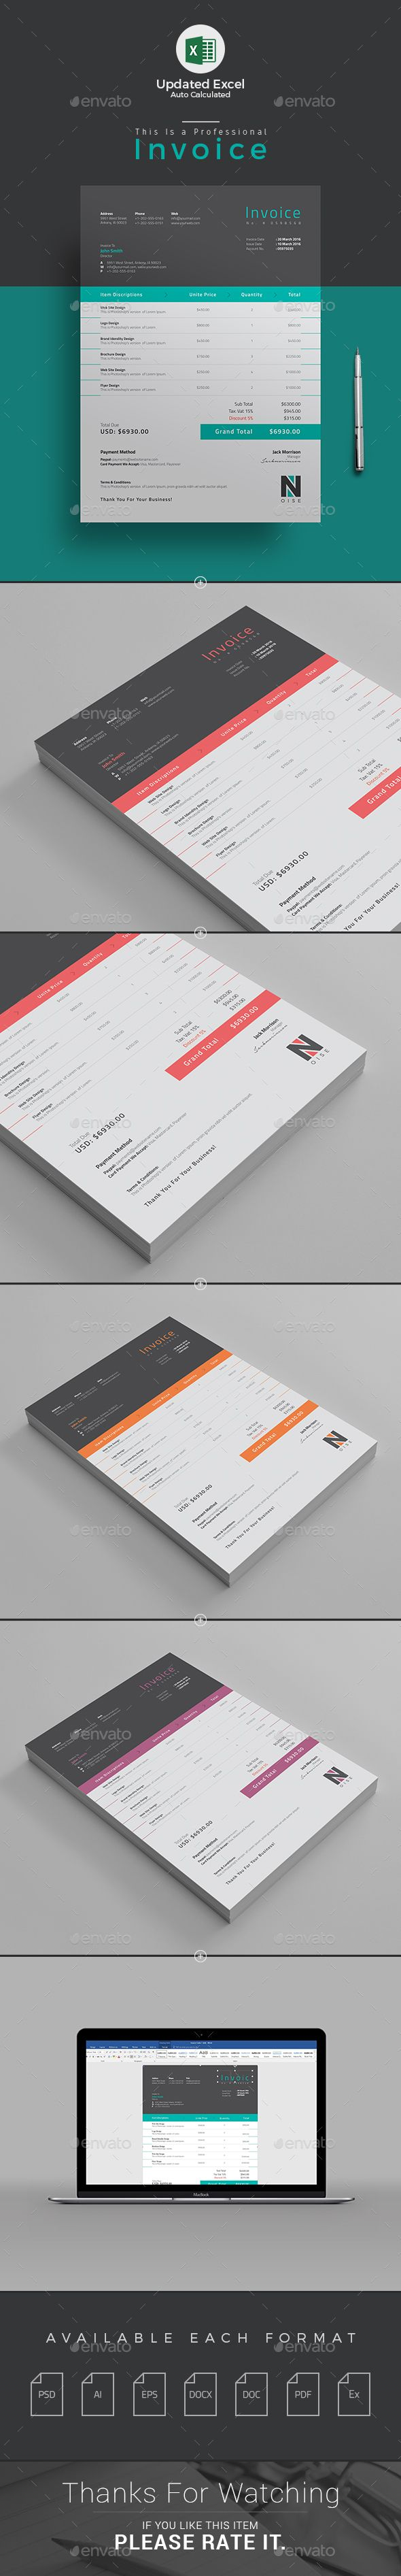 Pro Forma Invoice Definition Word Best  Create Invoice Ideas On Pinterest  Microsoft Word  Rent Receipt Format Pdf Download Word with Example Proforma Invoice Invoice  Proposals  Invoices Stationery Download Here  Httpsgraphicriver Invoice Reports Pdf